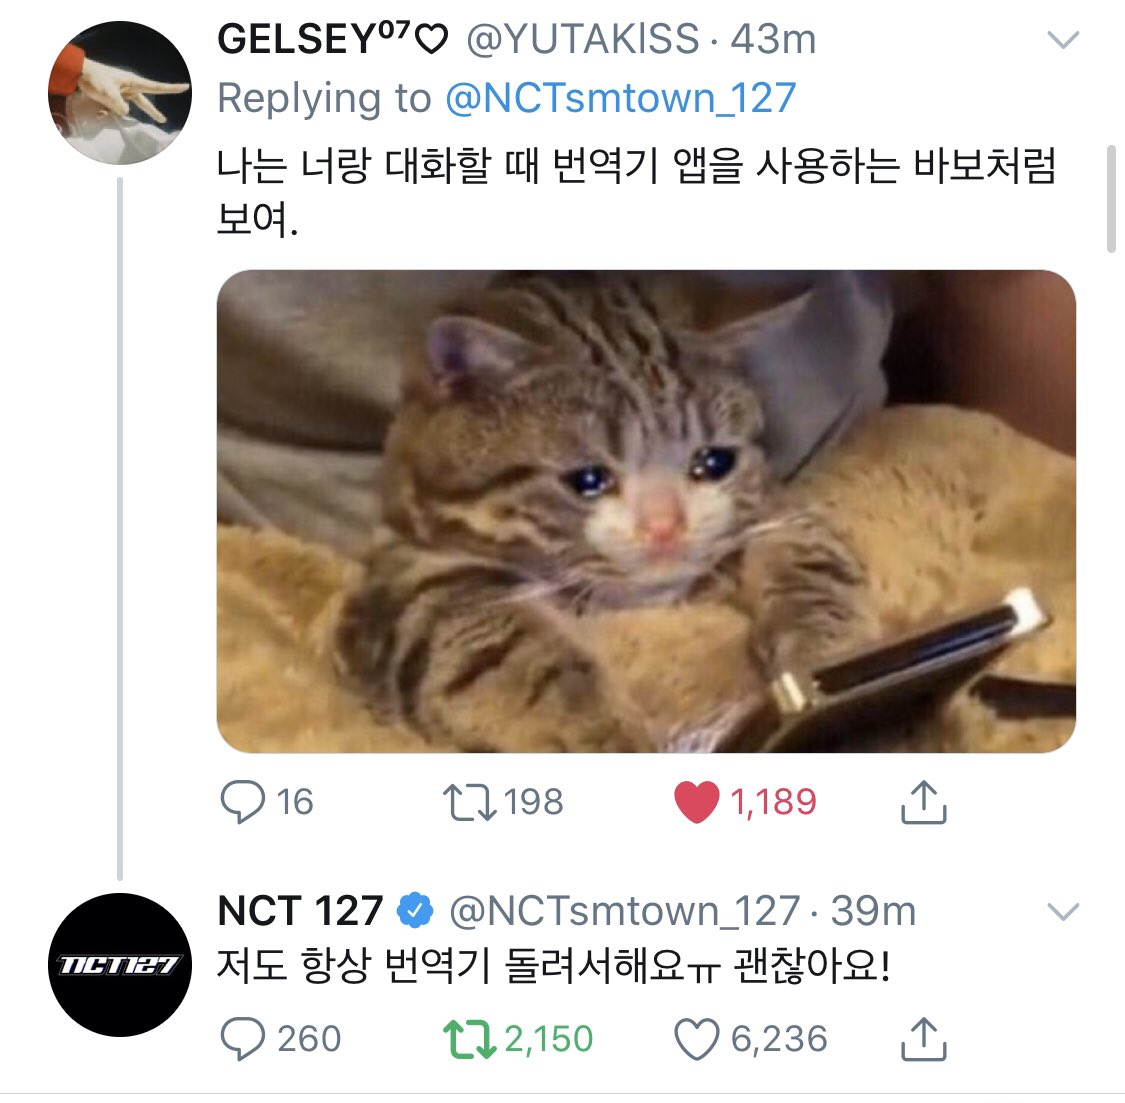 fan: i look like a fool using a translator to talk to you jungwoo: i use the translator frequently, it's okay!   jungwoo  <br>http://pic.twitter.com/Eg5vafFrGR